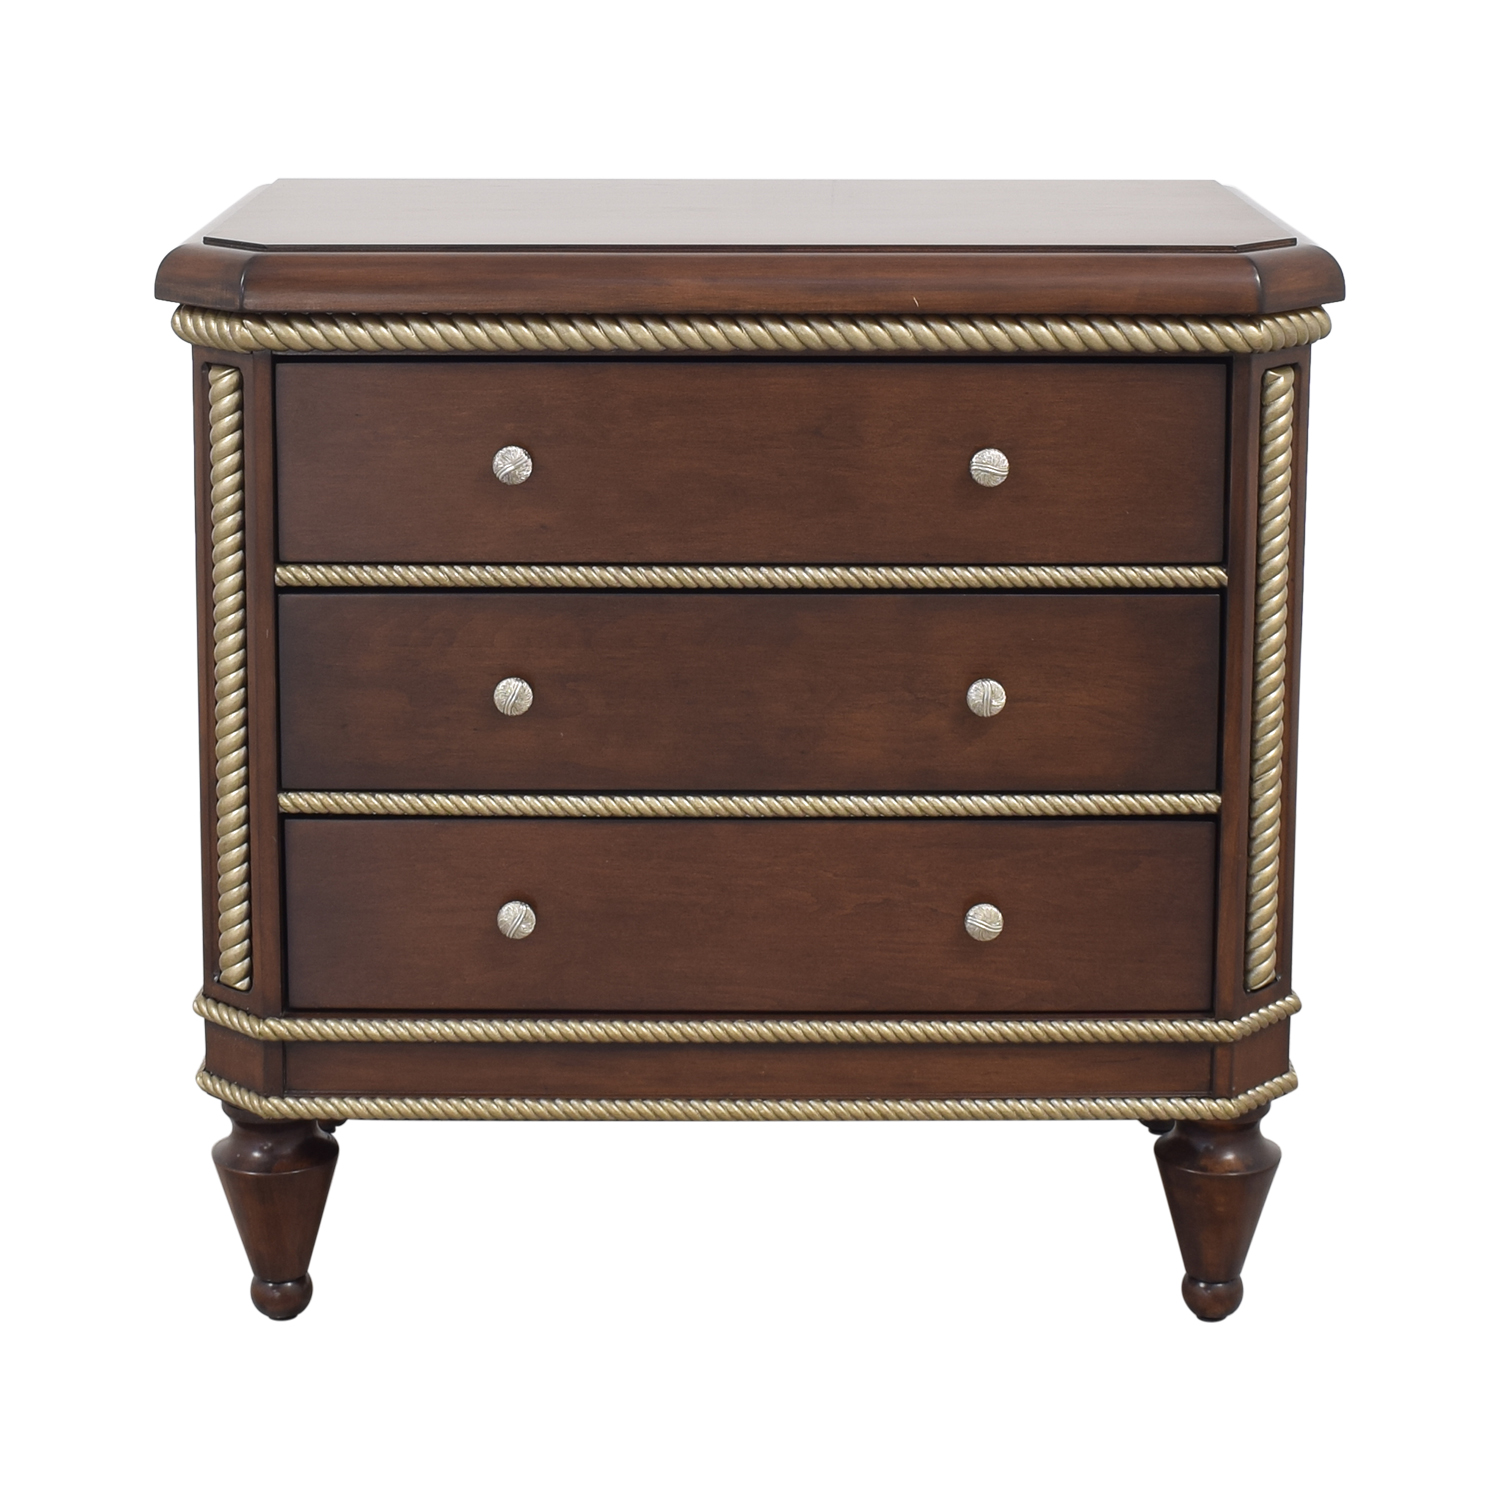 buy Swaim Chest of Drawers Swaim End Tables